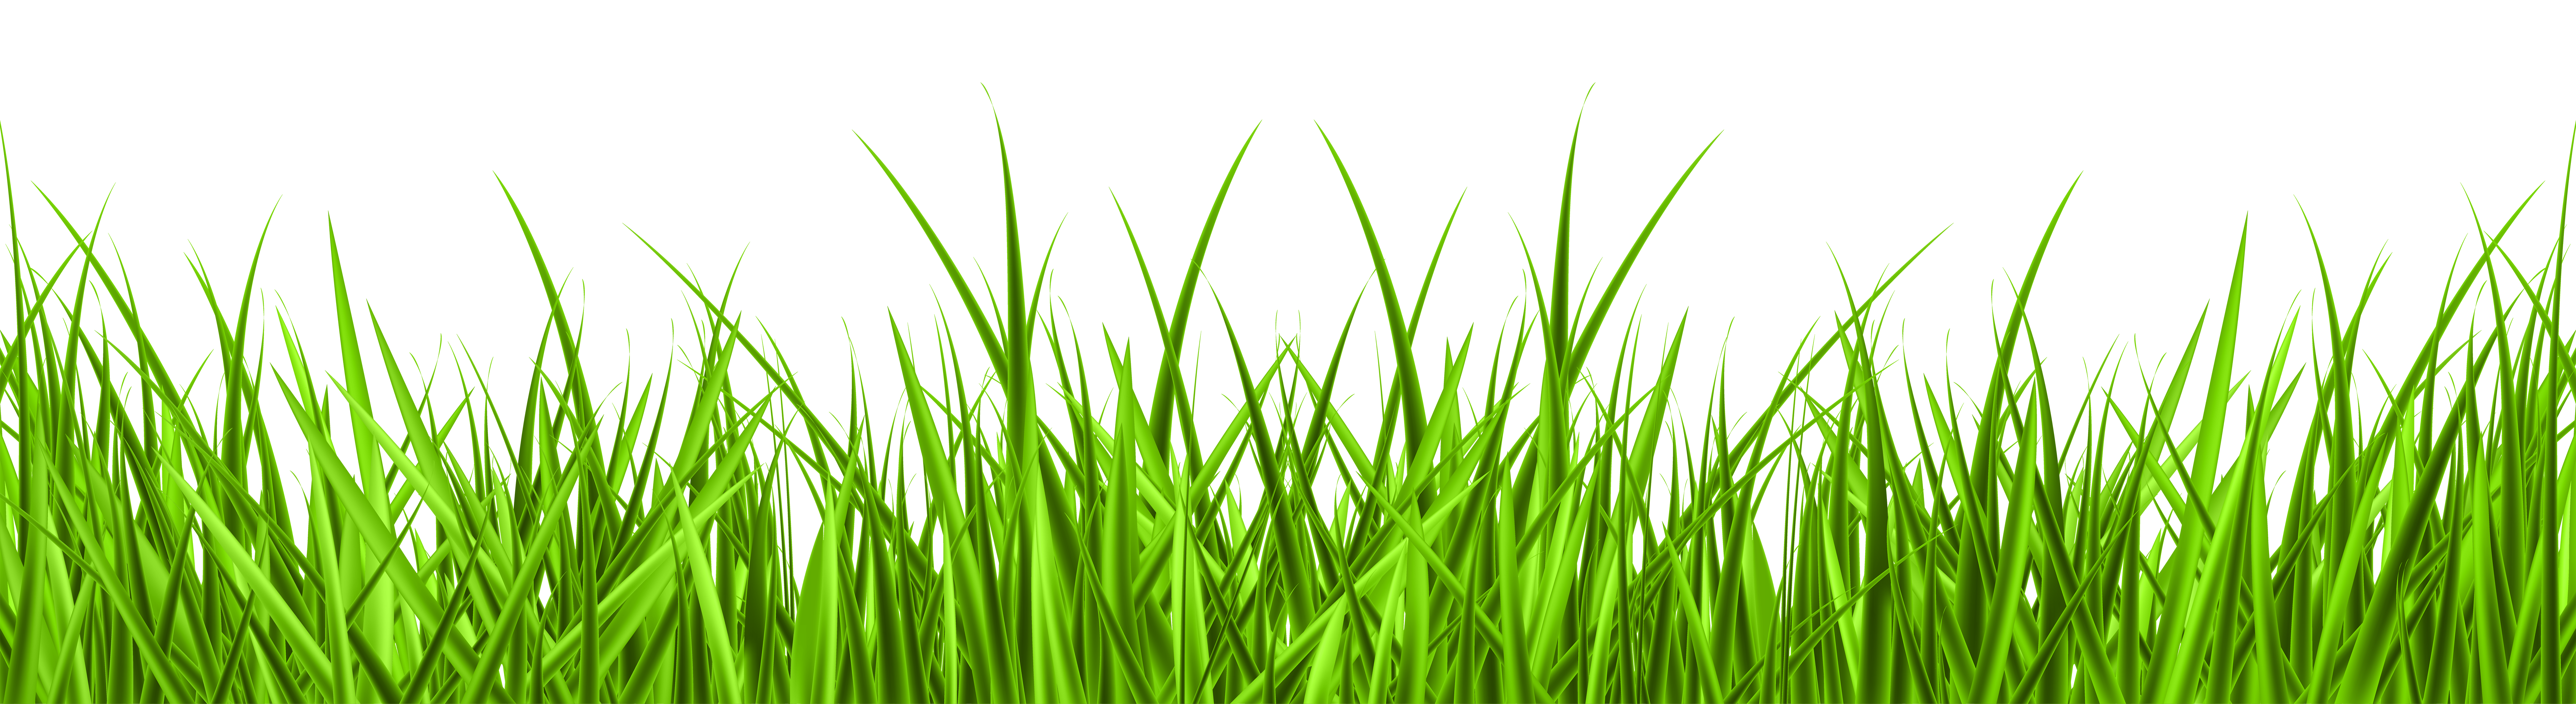 png black and white library Lawn clipart wild grass. Png clip art image.